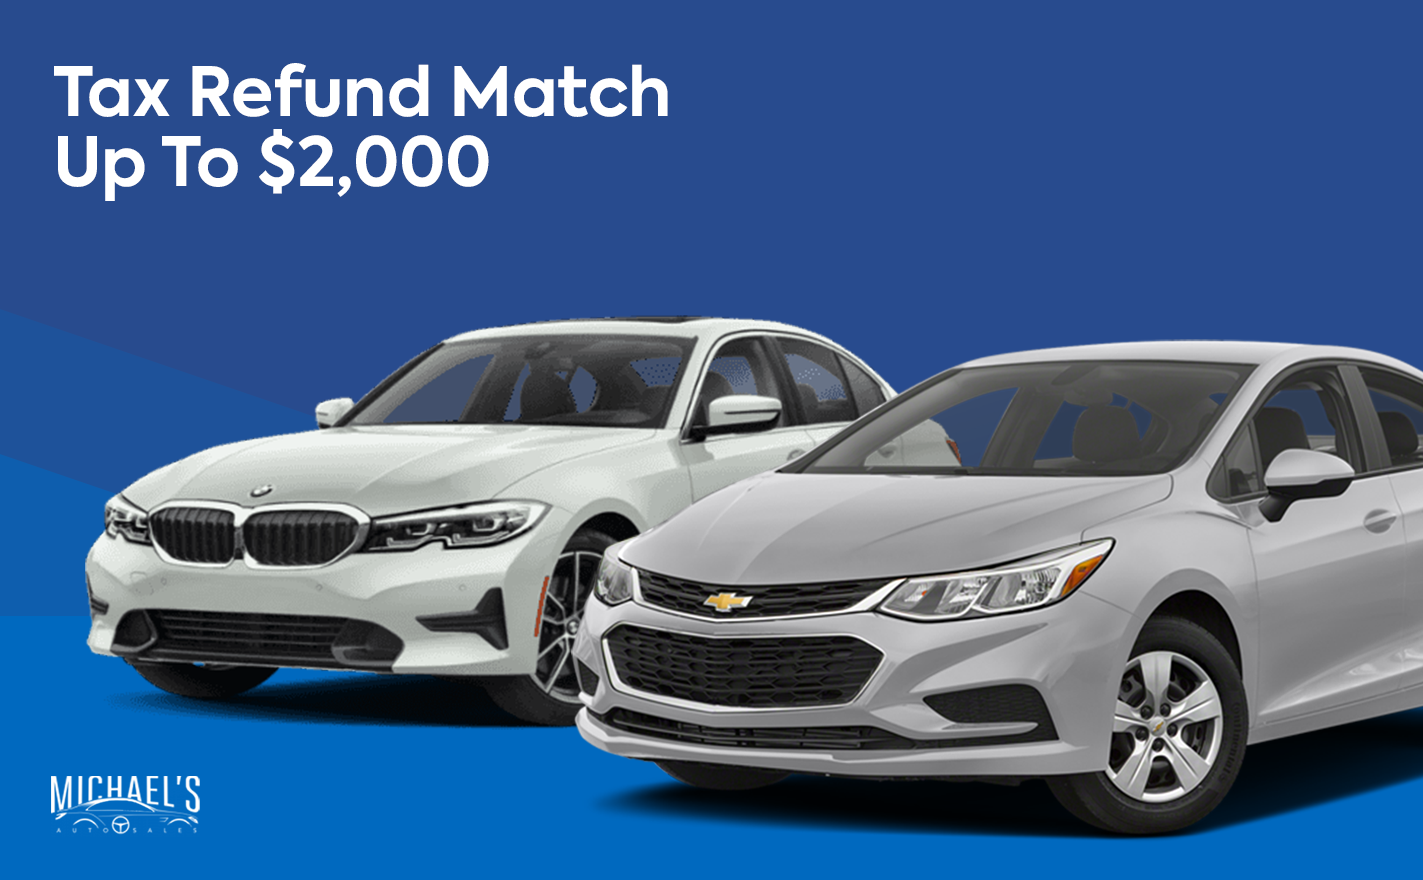 Tax Season Refund Match Up To $2,000